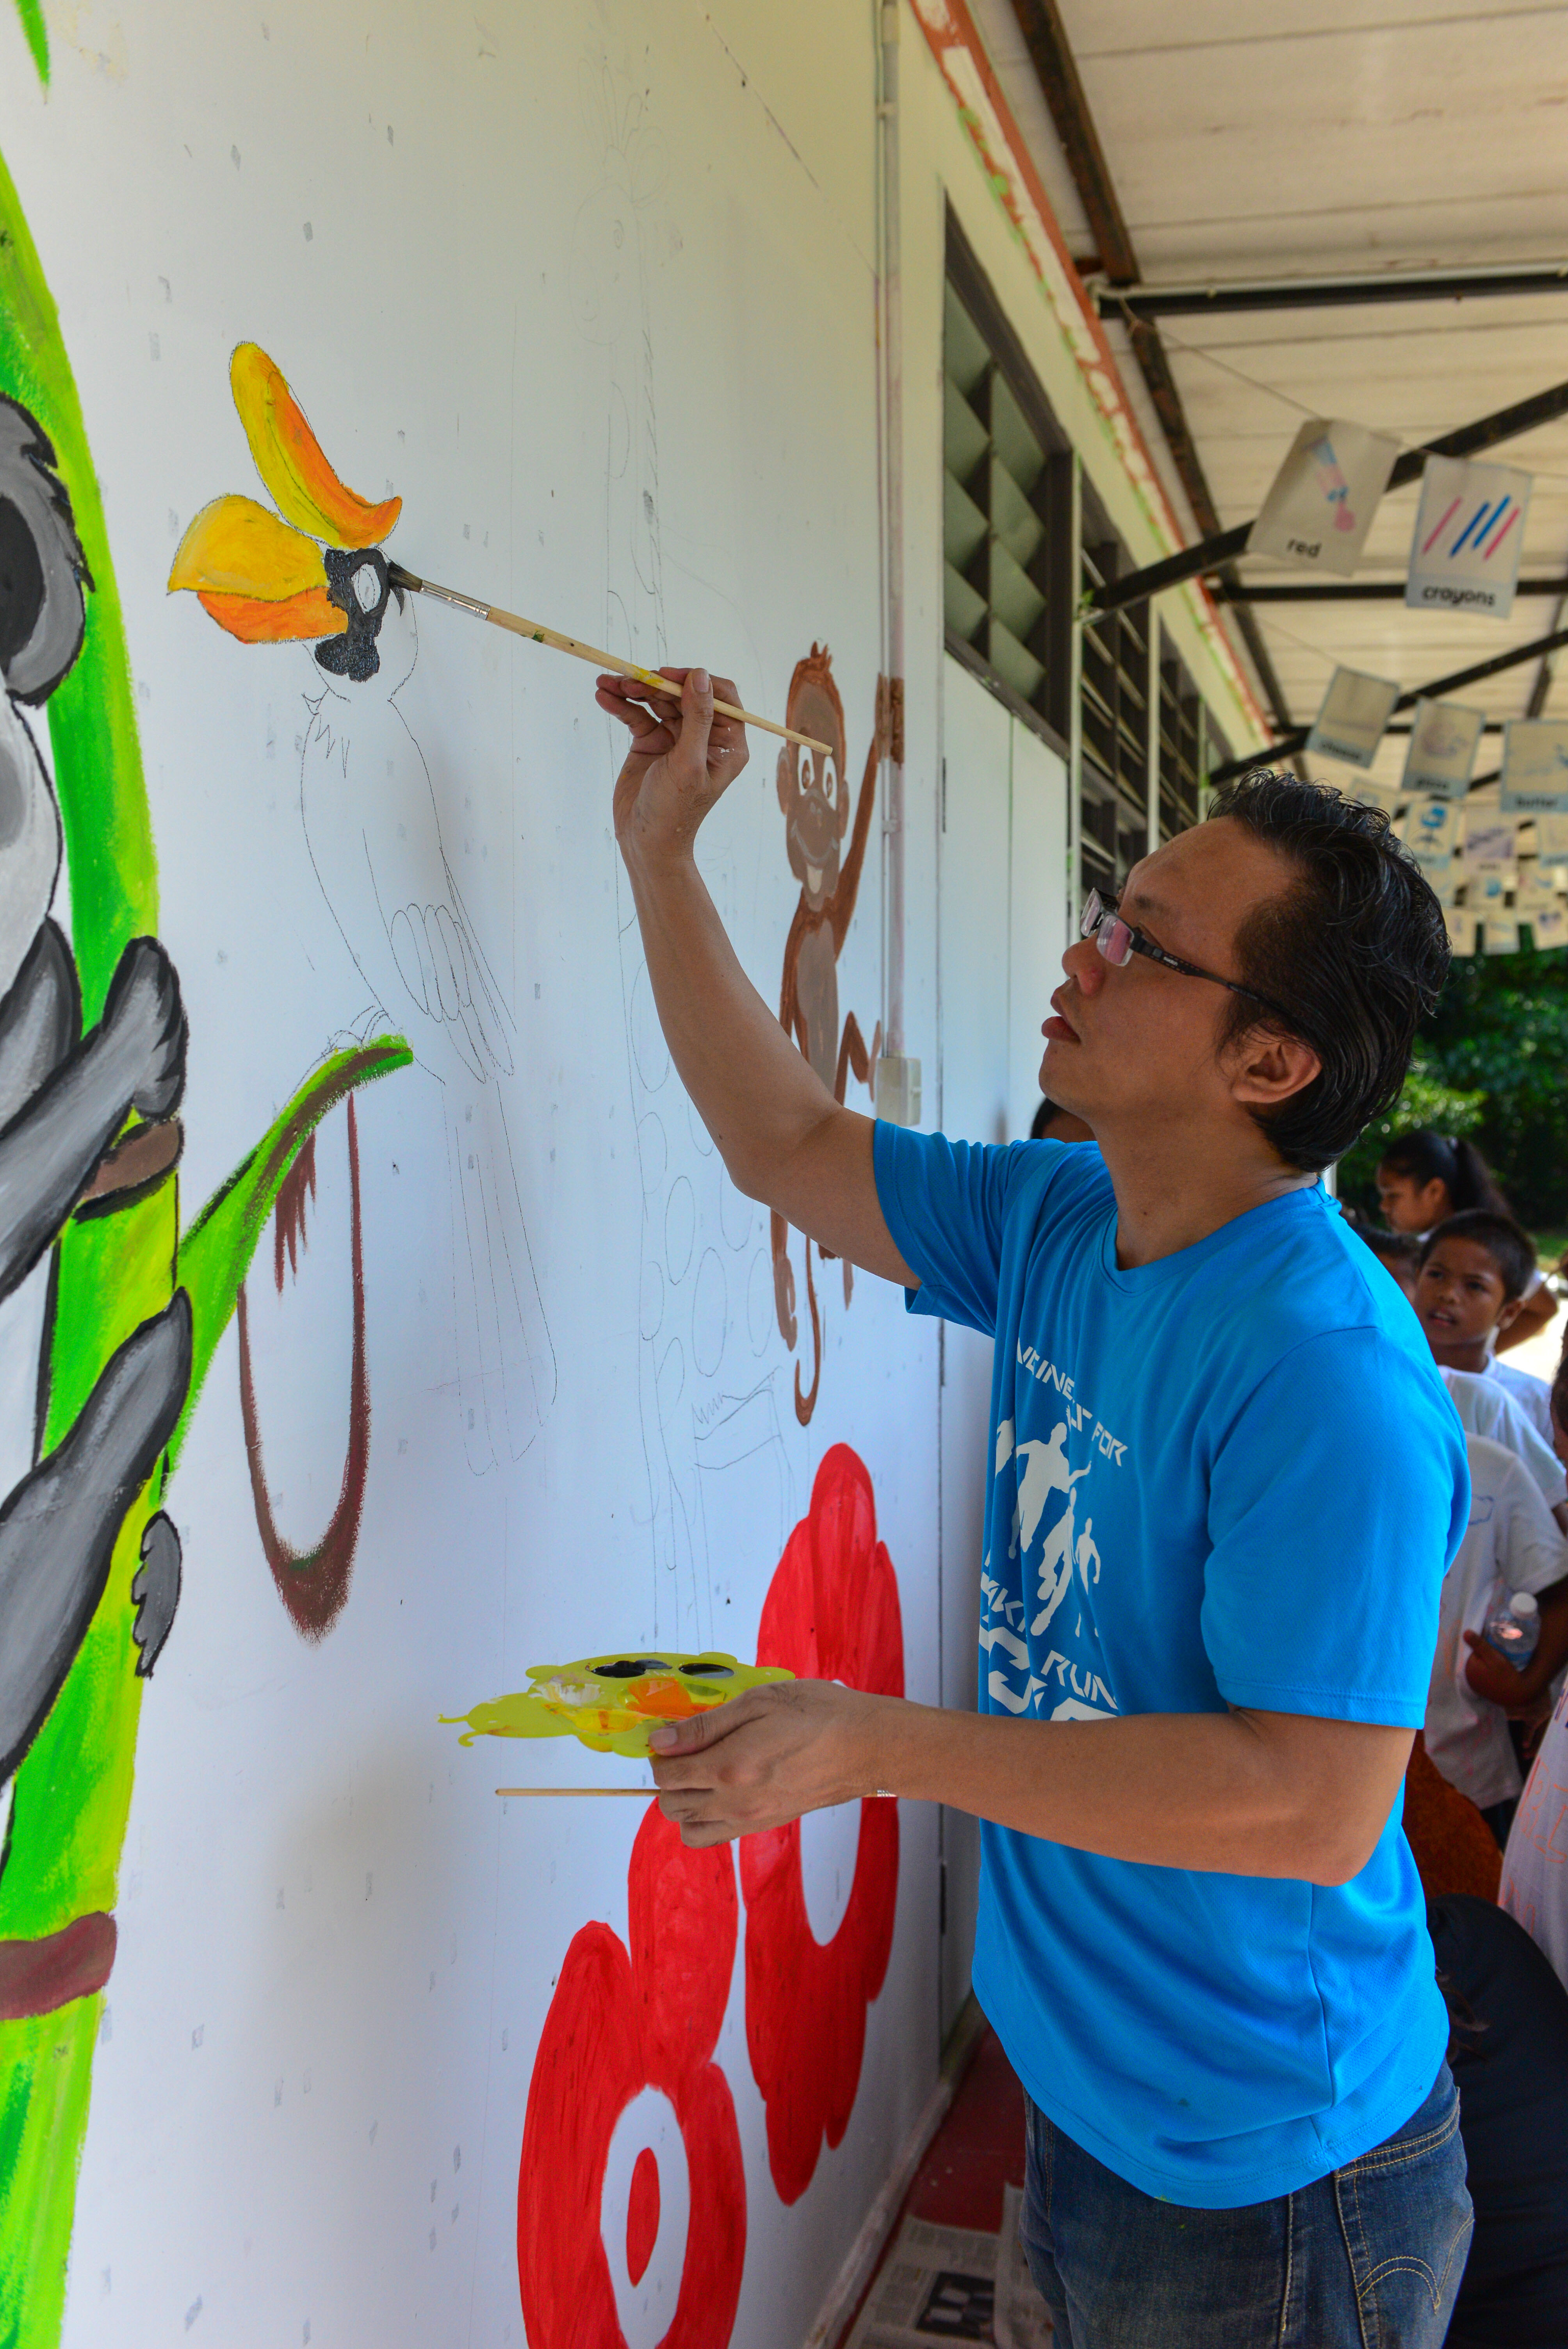 x.mural painting